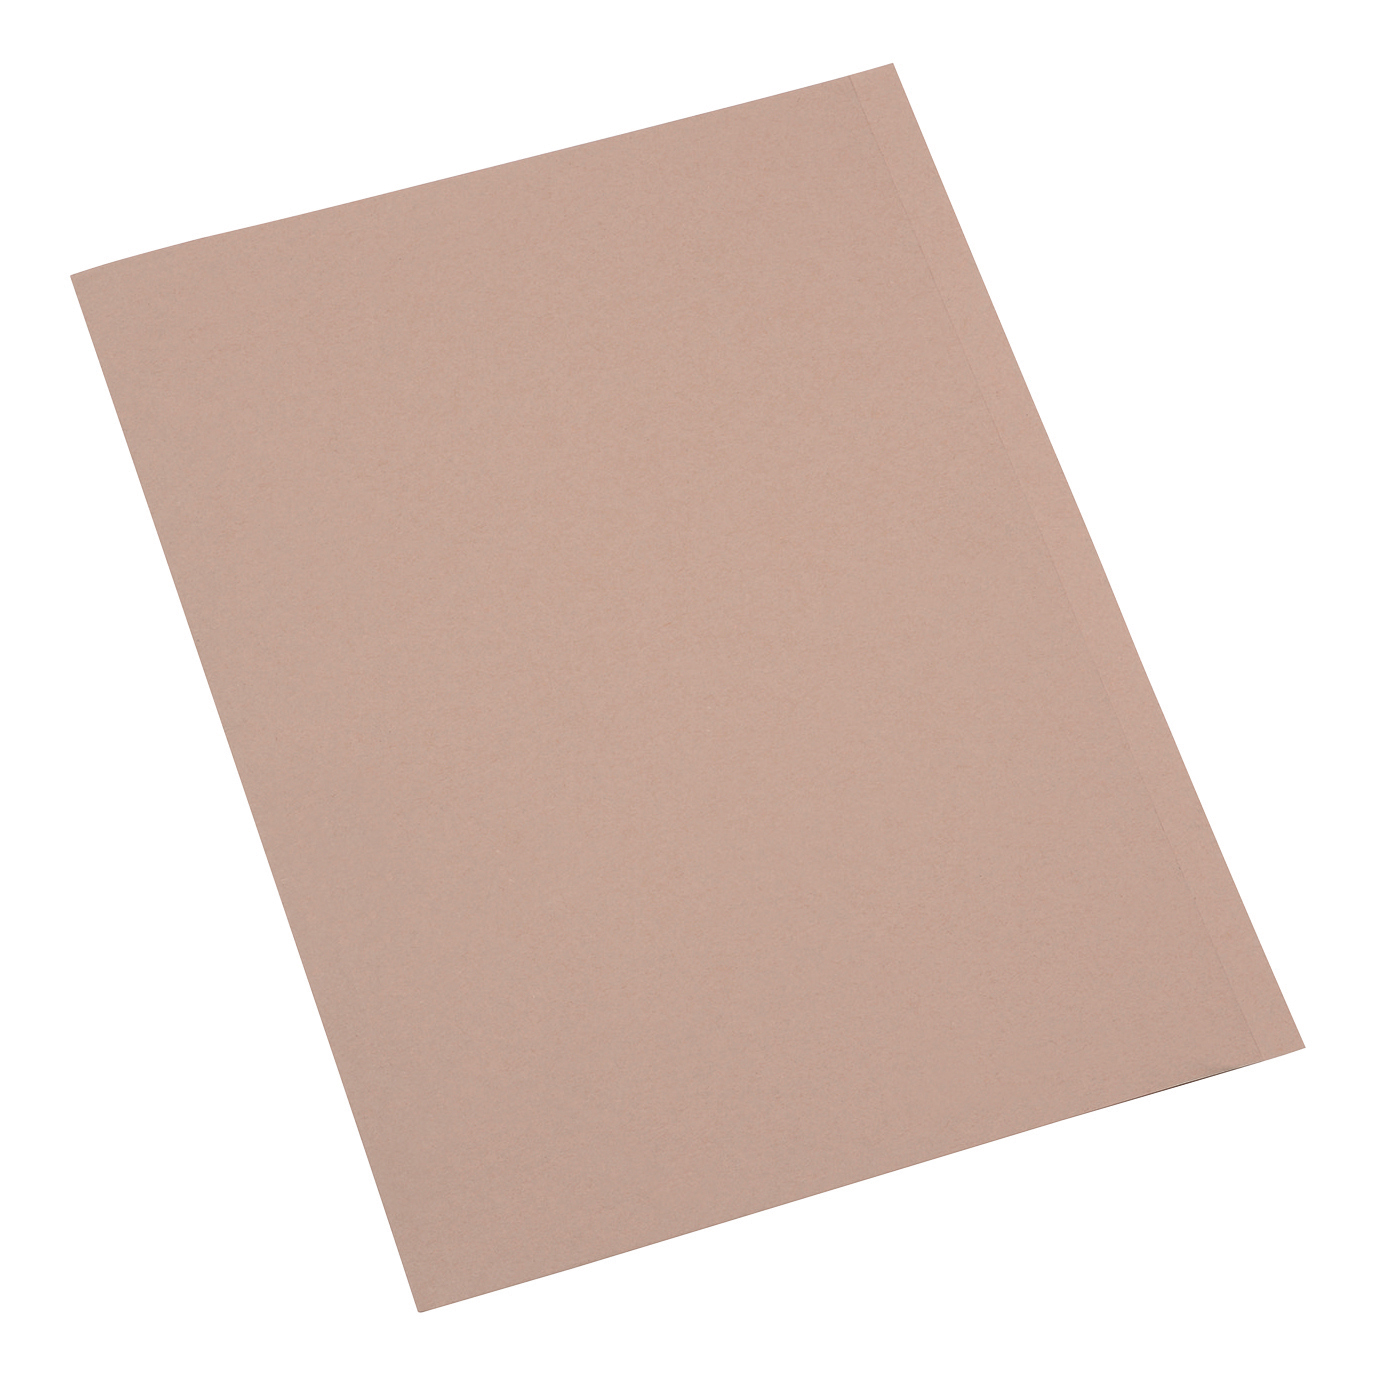 5 Star Eco Slip File A4 250gsm Recycled Buff Pack 50